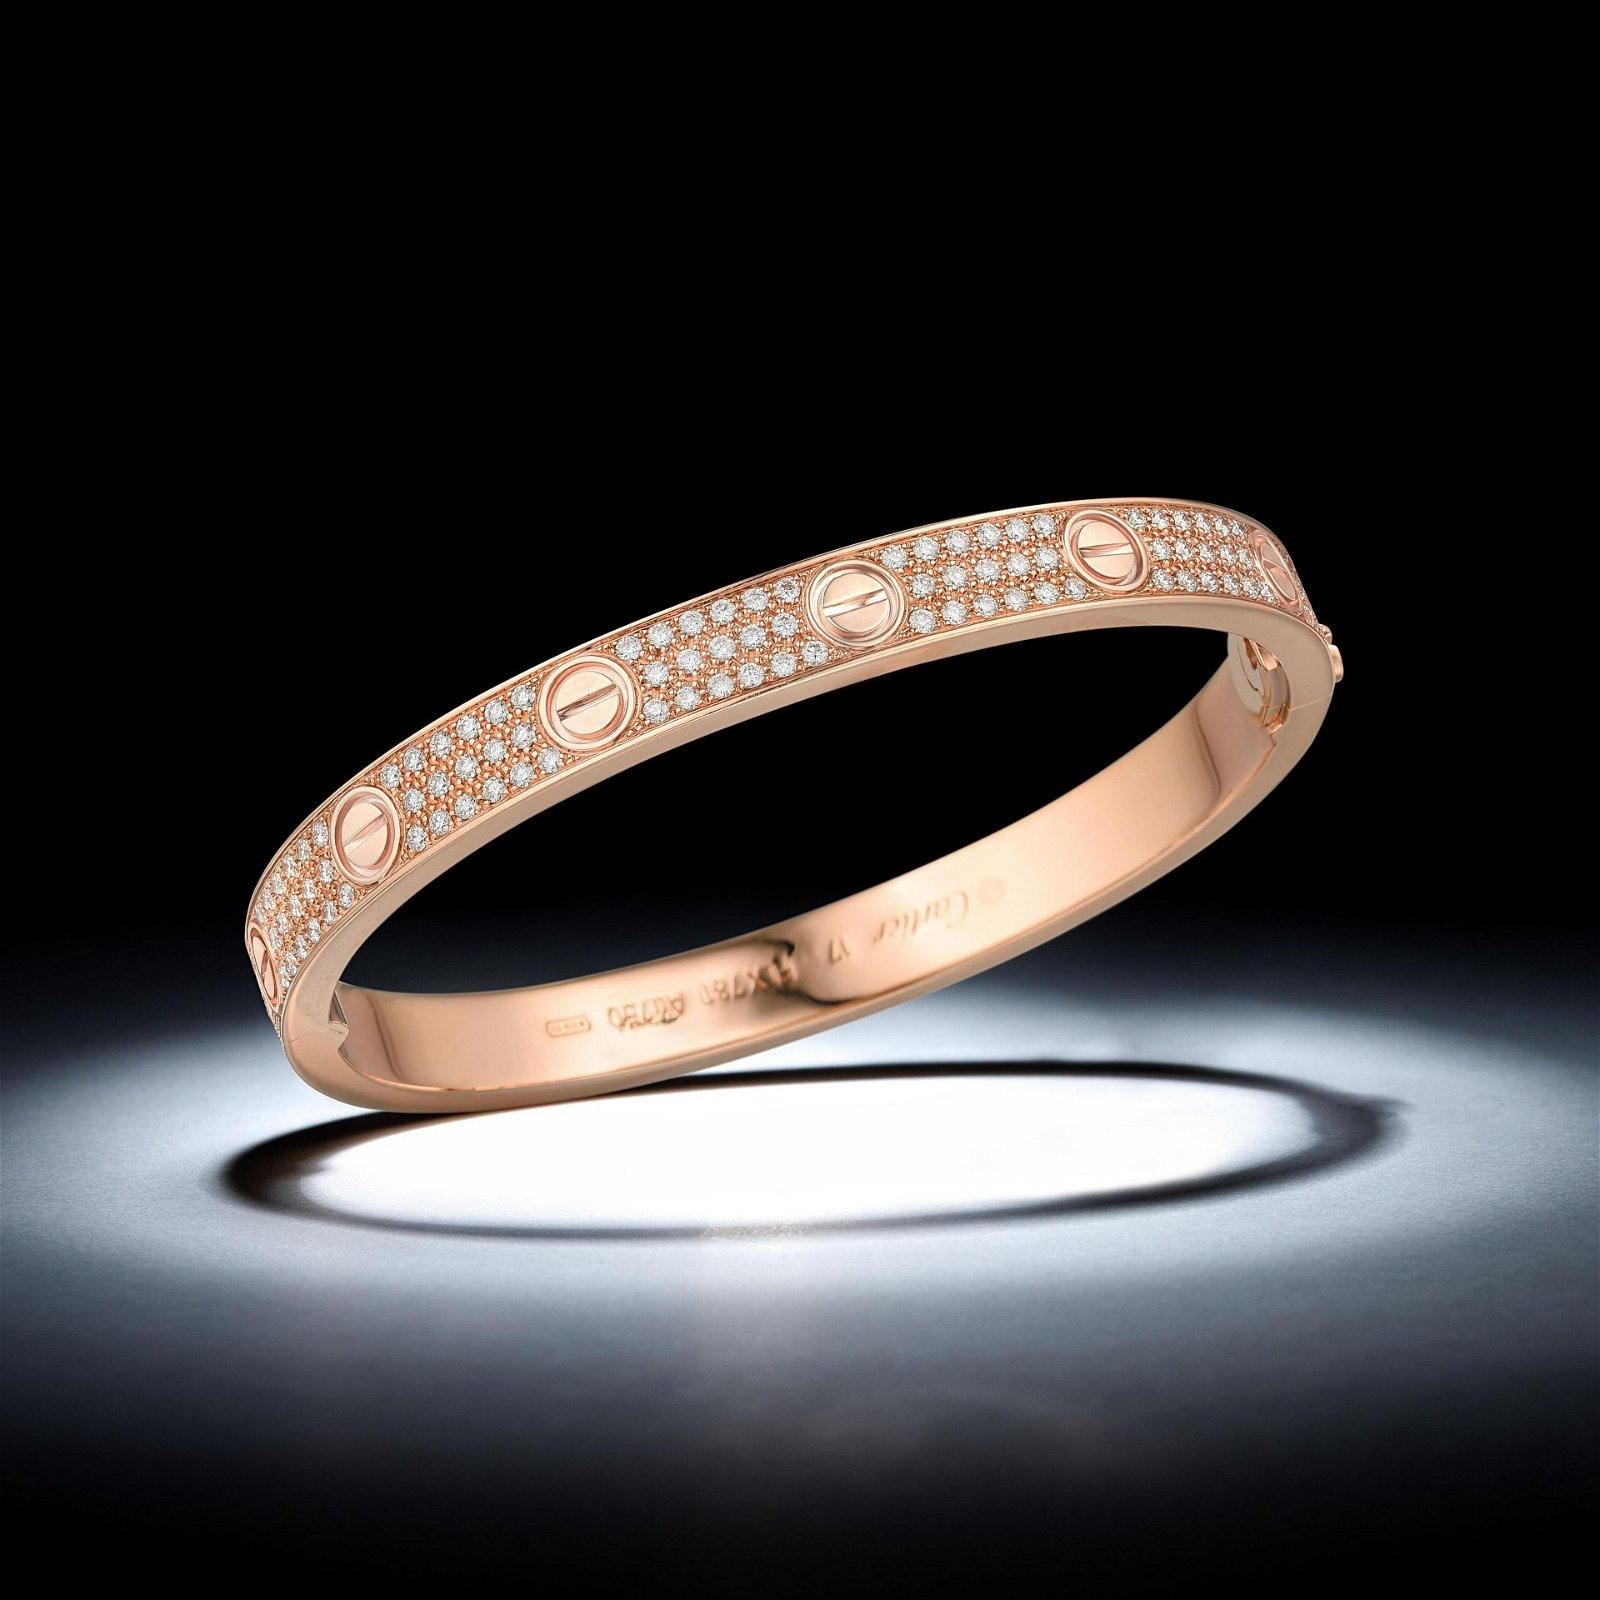 Cartier Diamond-Paved Love Bracelet